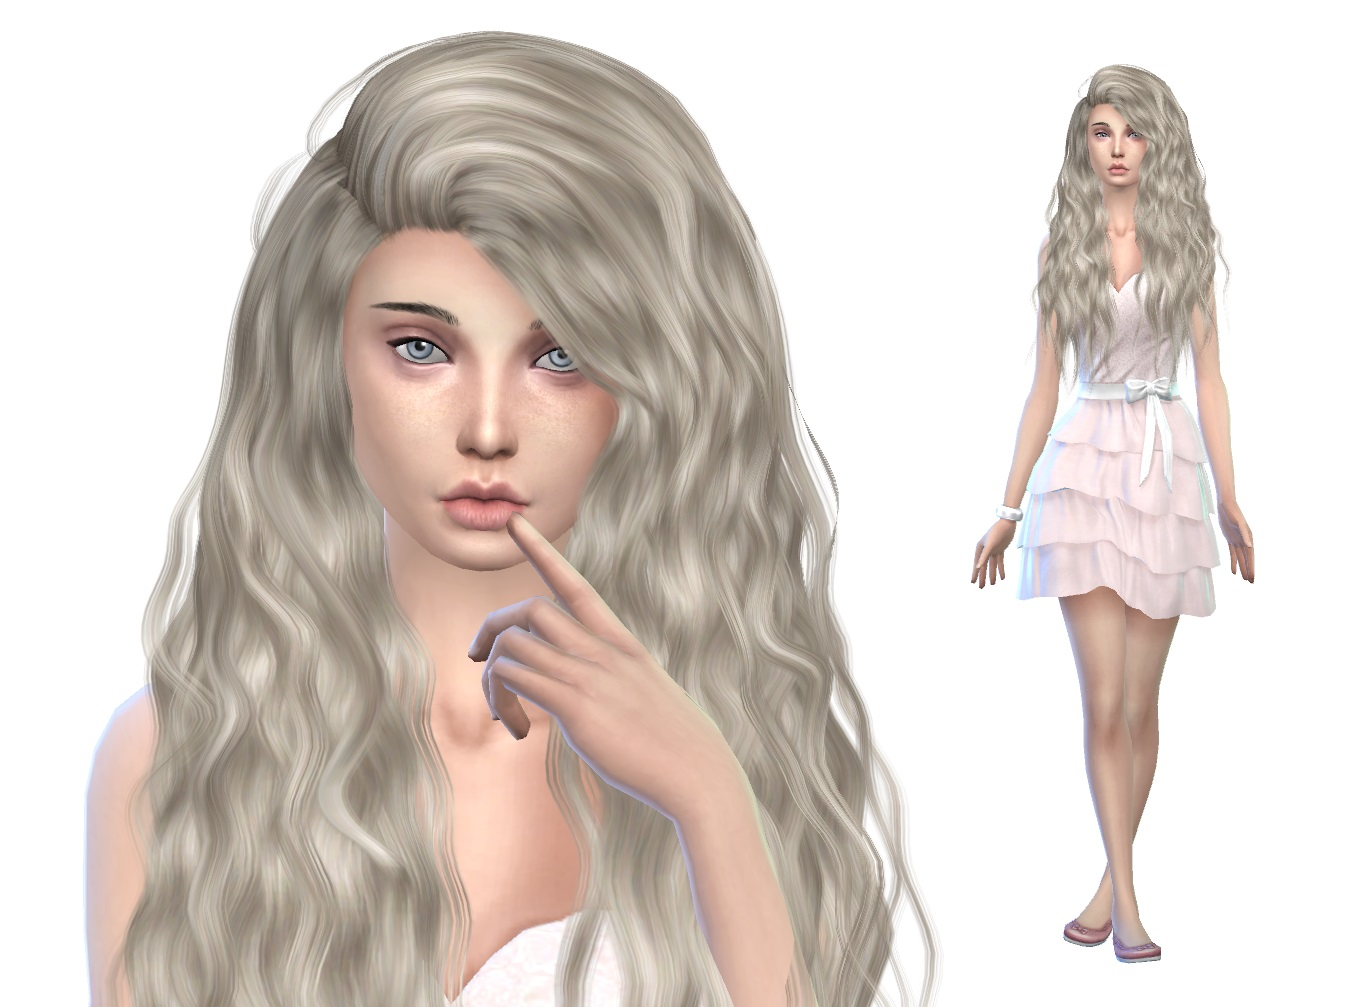 sims 4 cc hair pack download